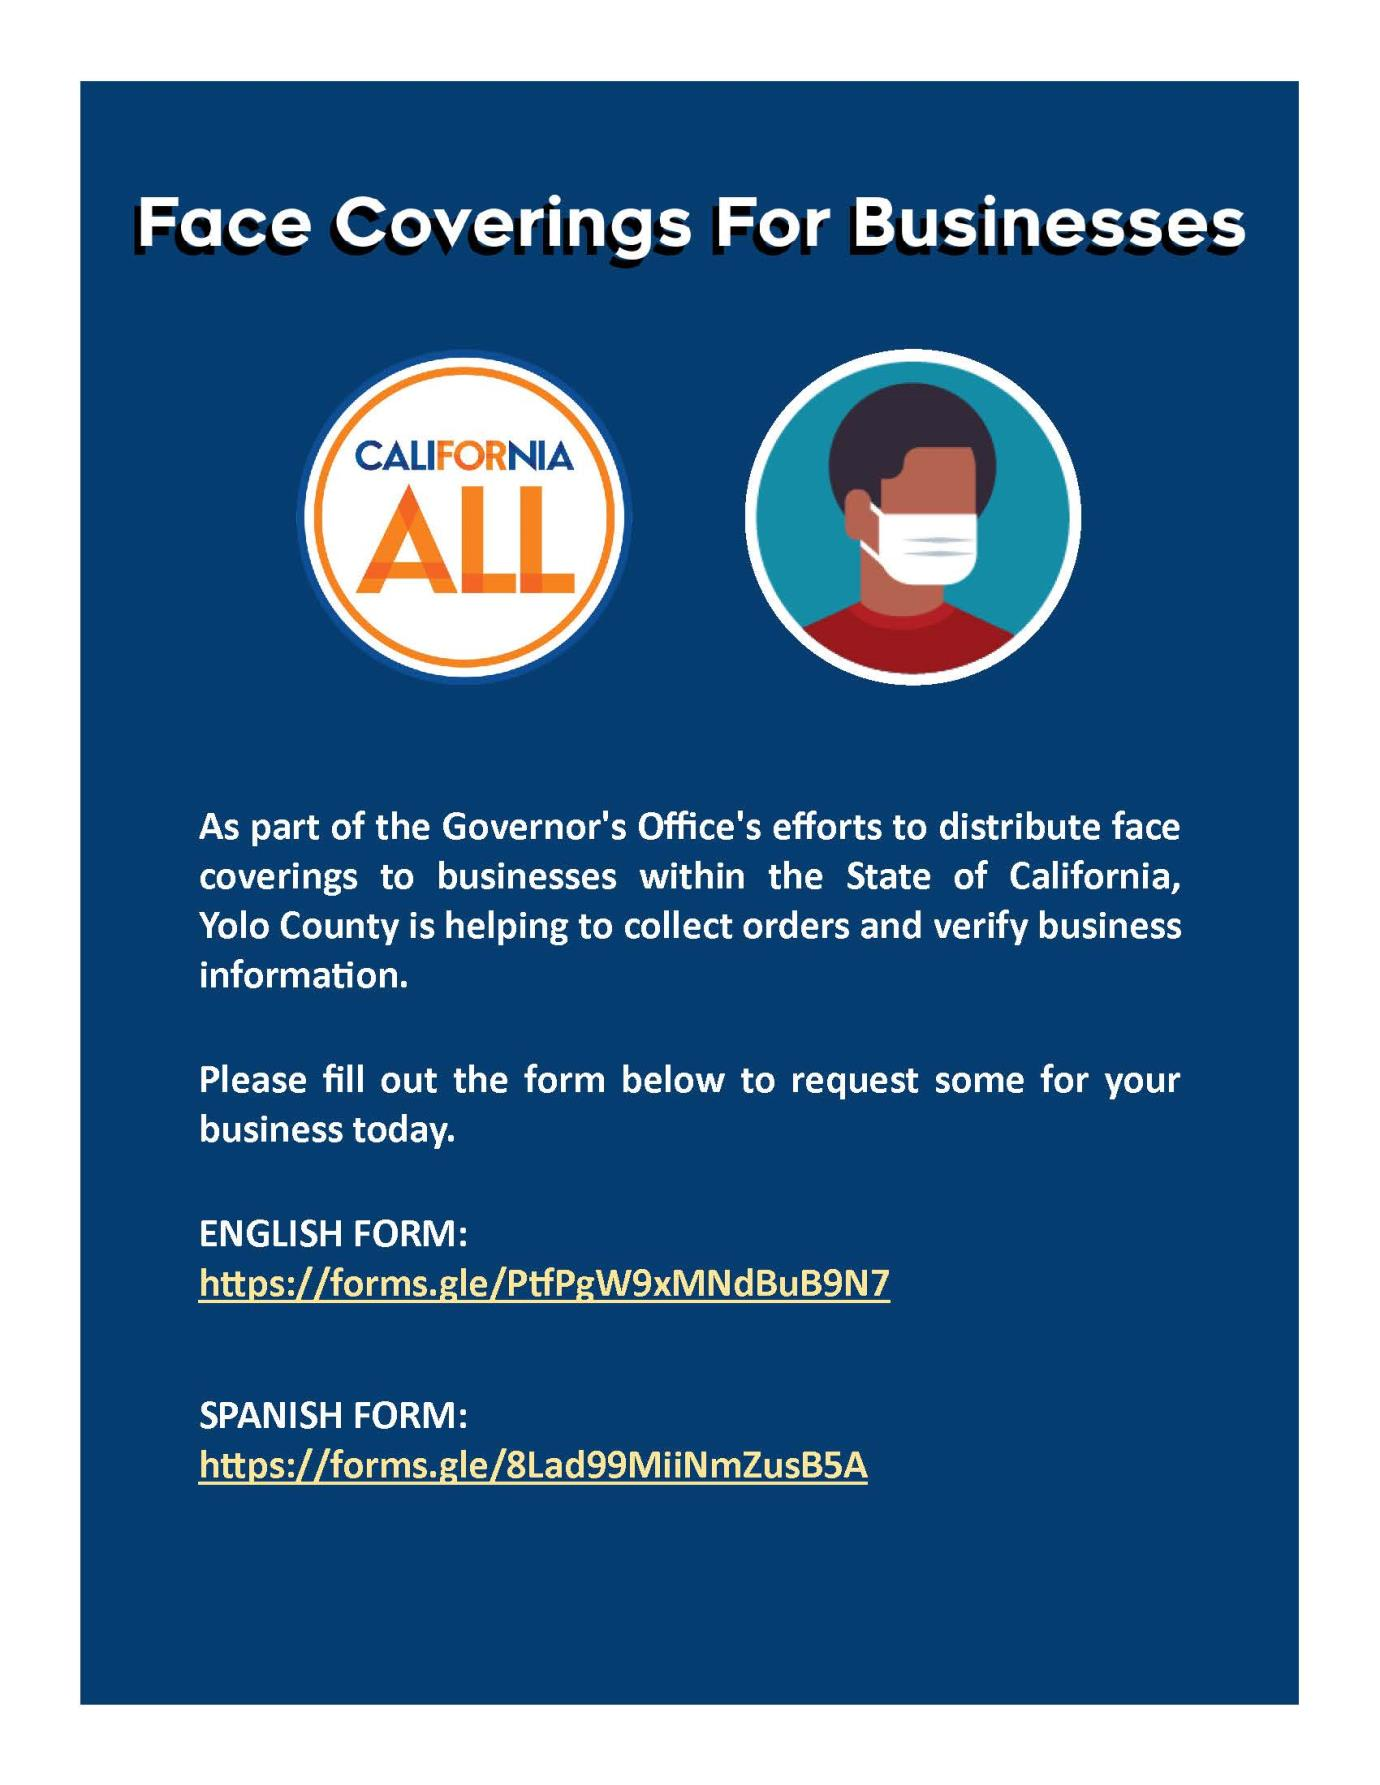 Business Face Covering Distribution (8 x 11)